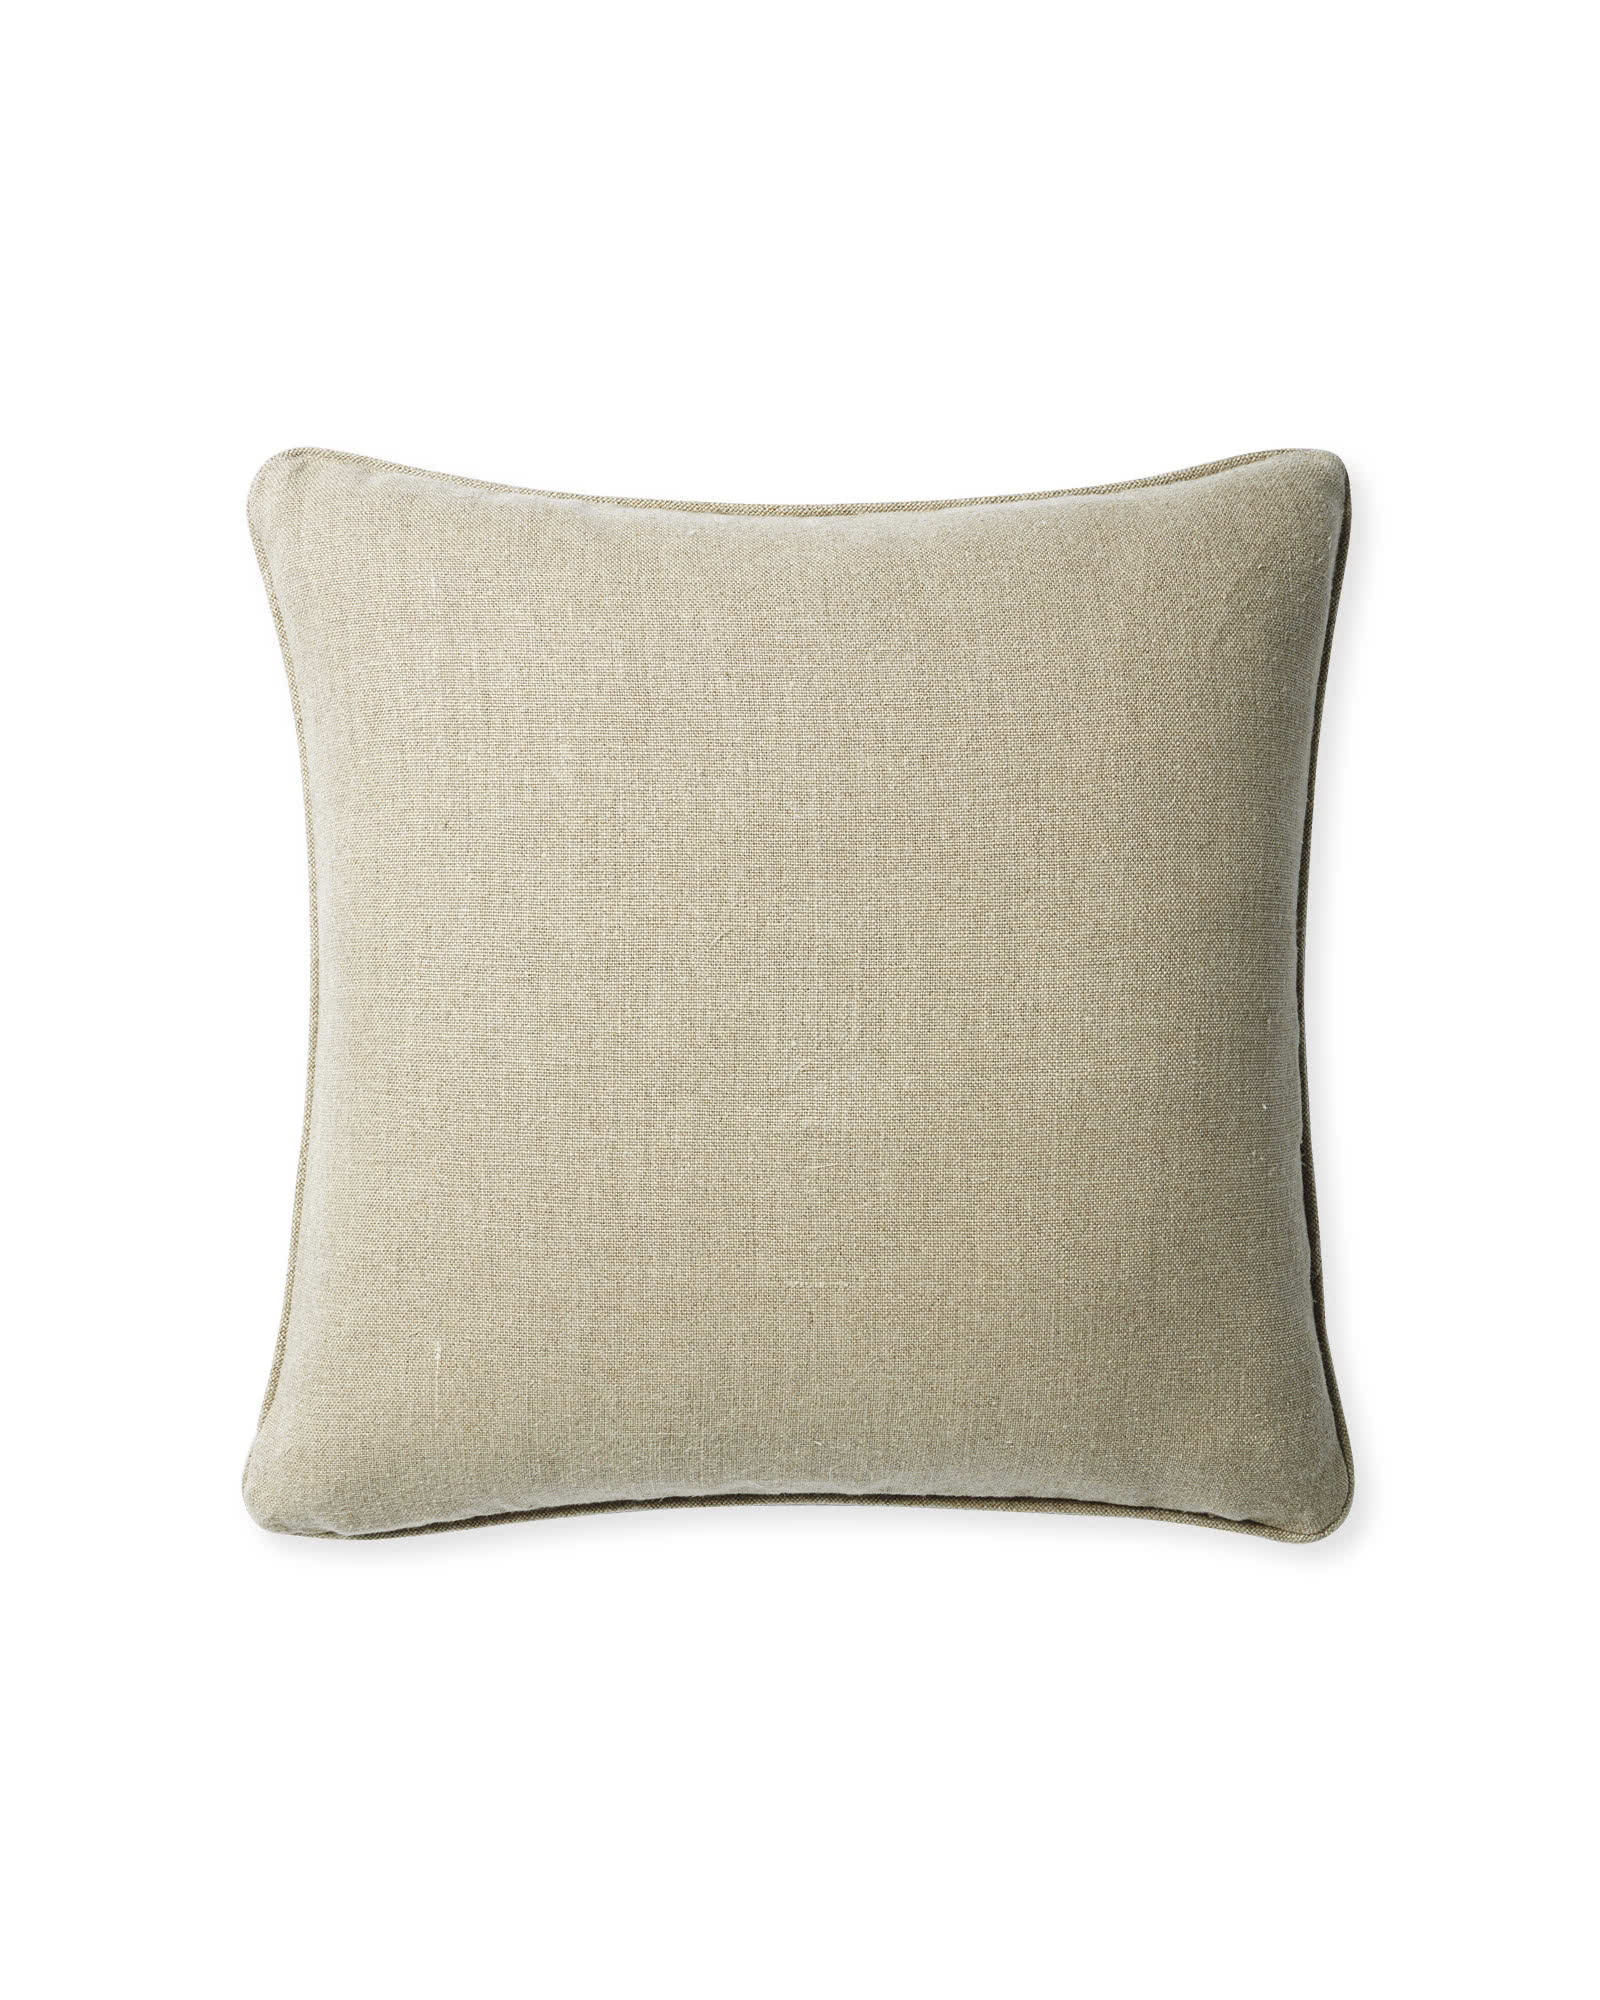 Leather Pillow Cover